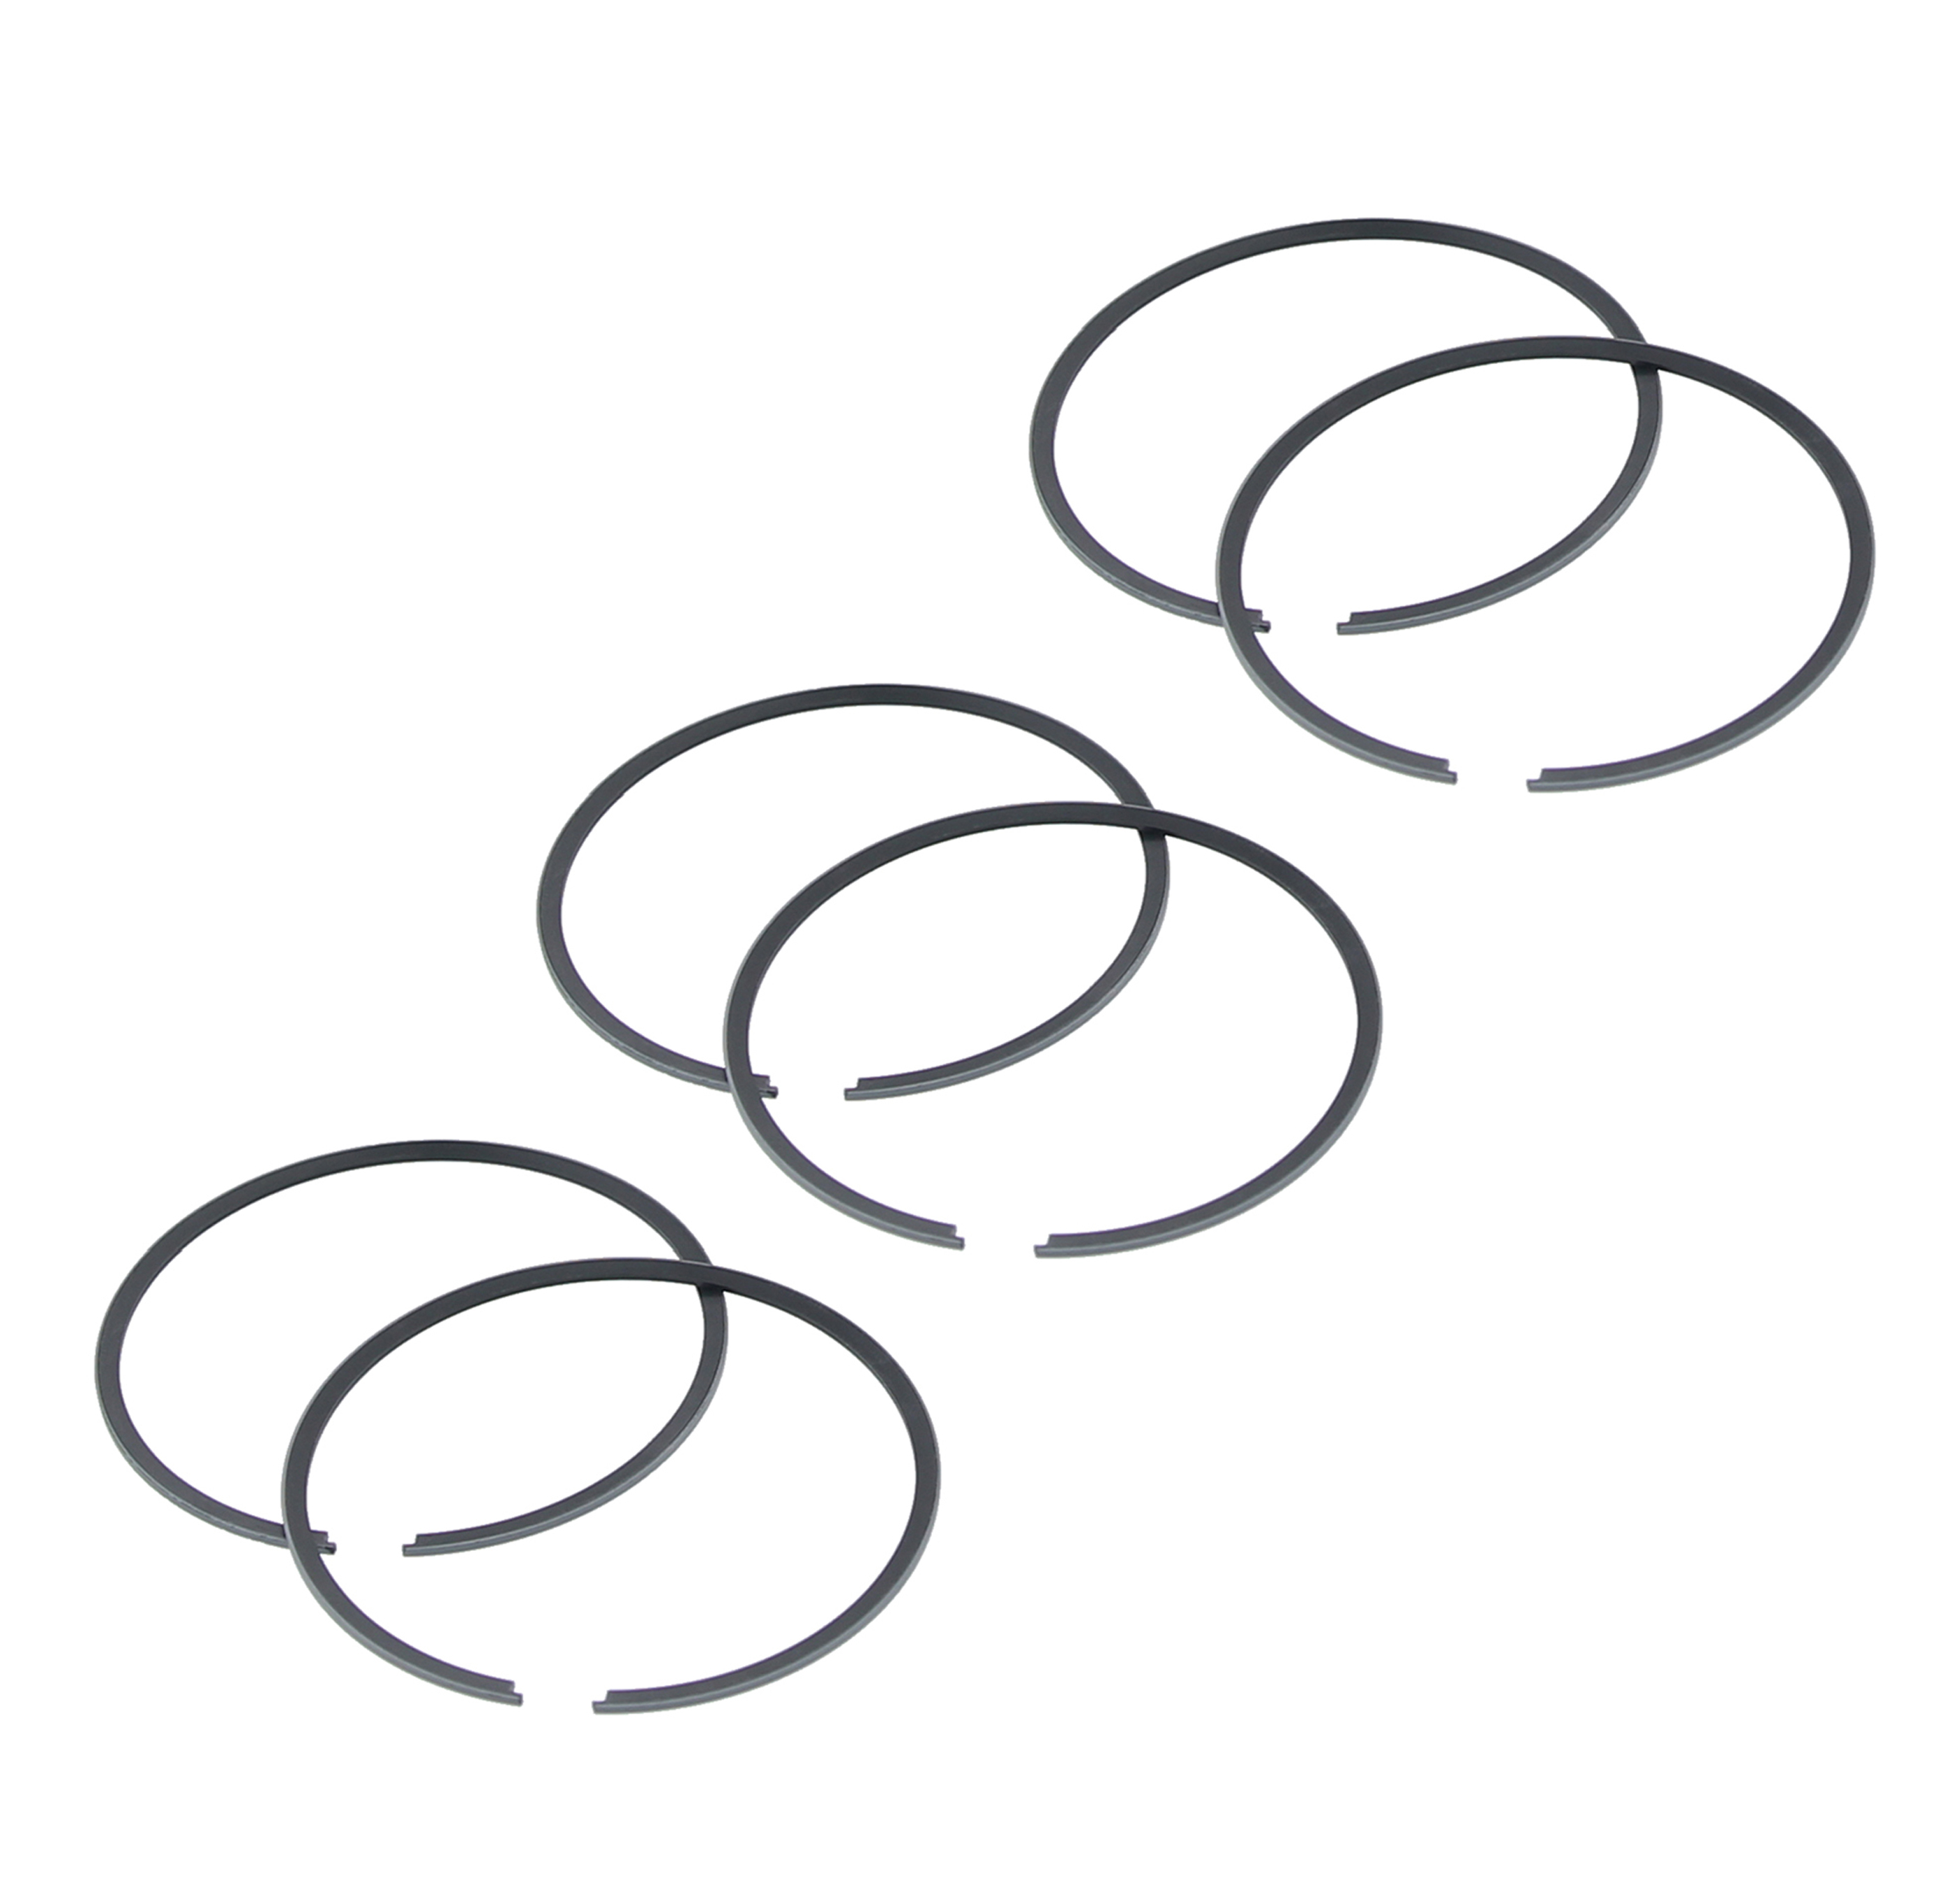 Piston Rings fit Yamaha VMAX 700 VX700 1997-2001 x3 by Race-Driven